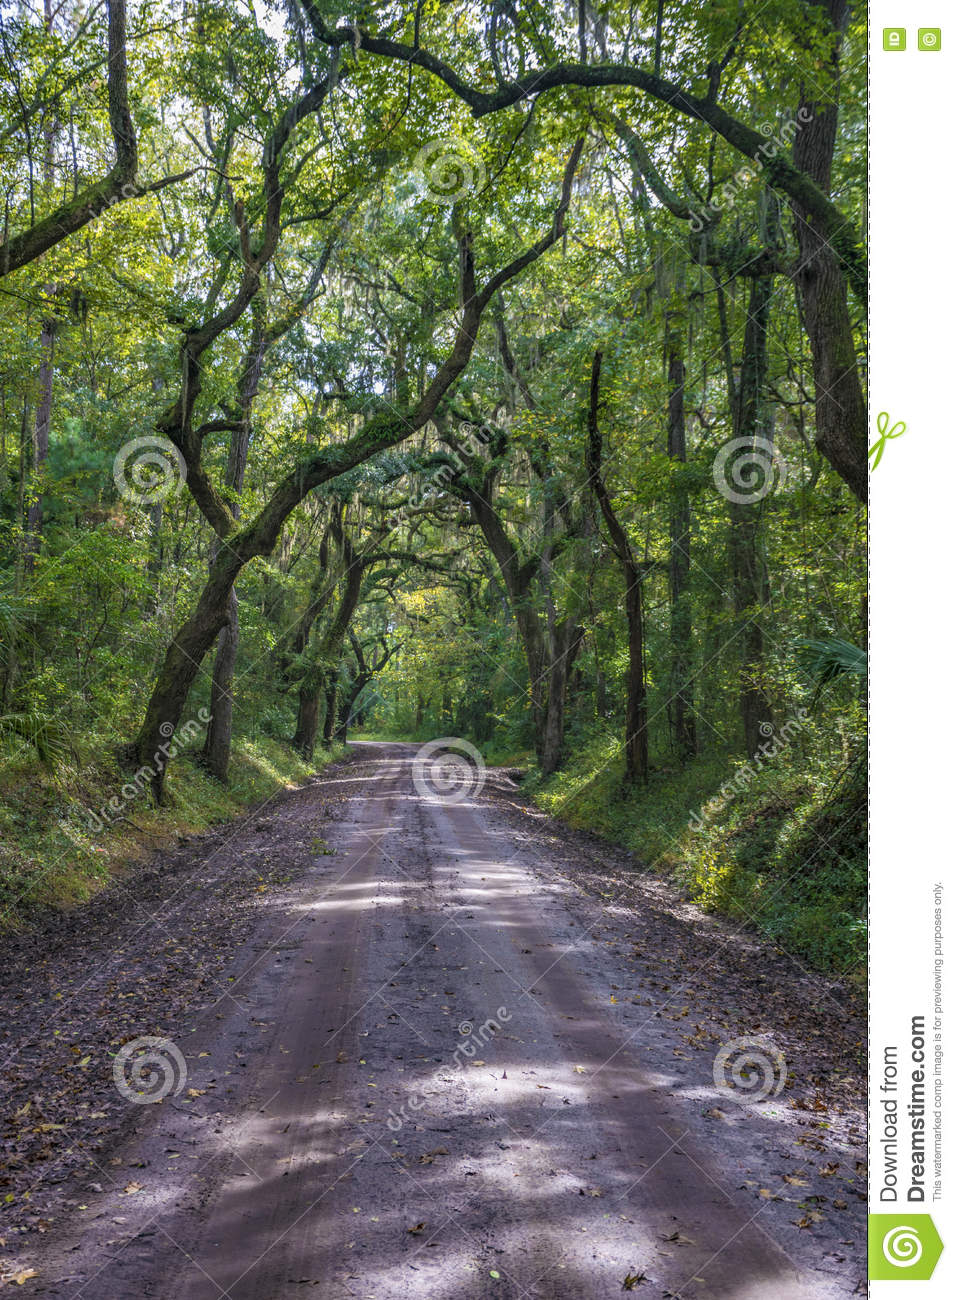 Lowcountry Dirt Road with Oak Tree Forest to Botany Bay Plantation in  Edisto Island, South Carolina.